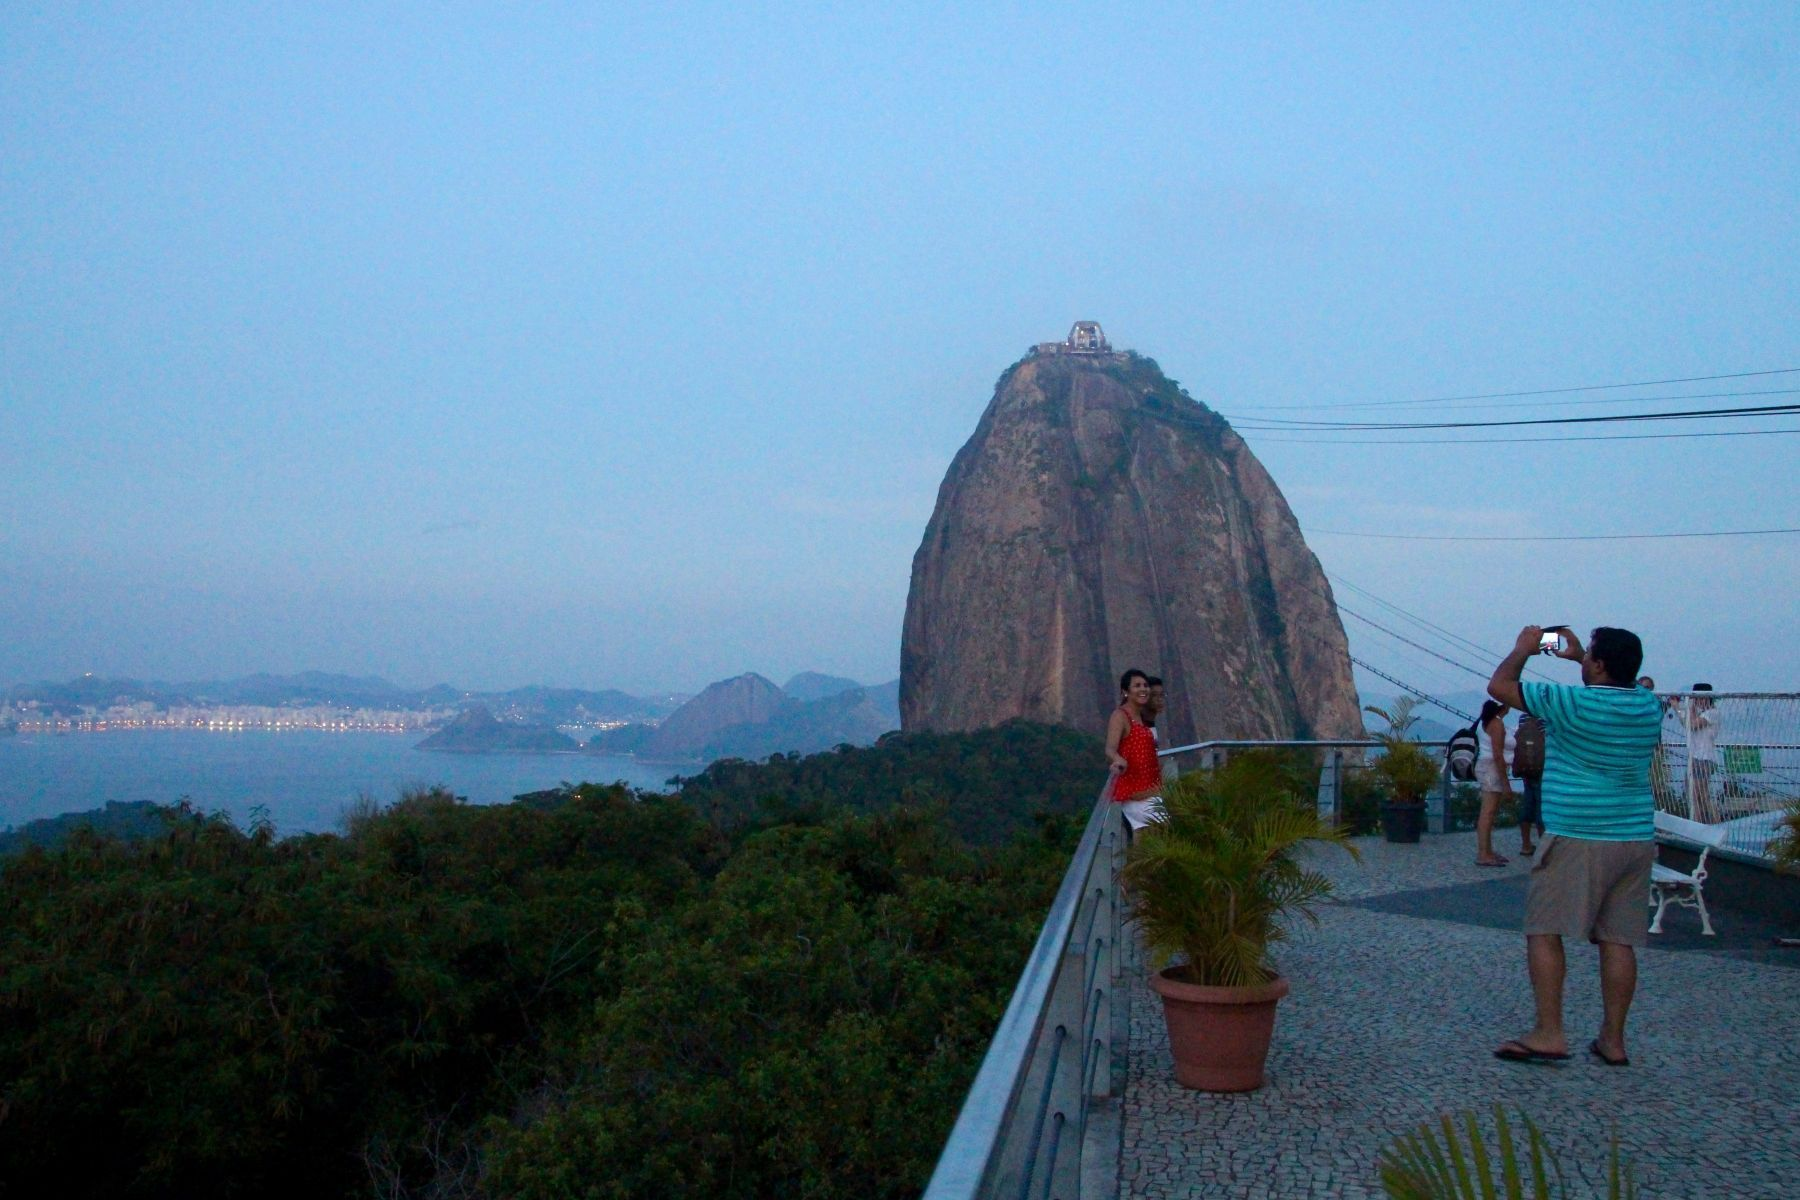 A young woman poses in front of Pão de Açúcar (Sugarloaf Mountain).